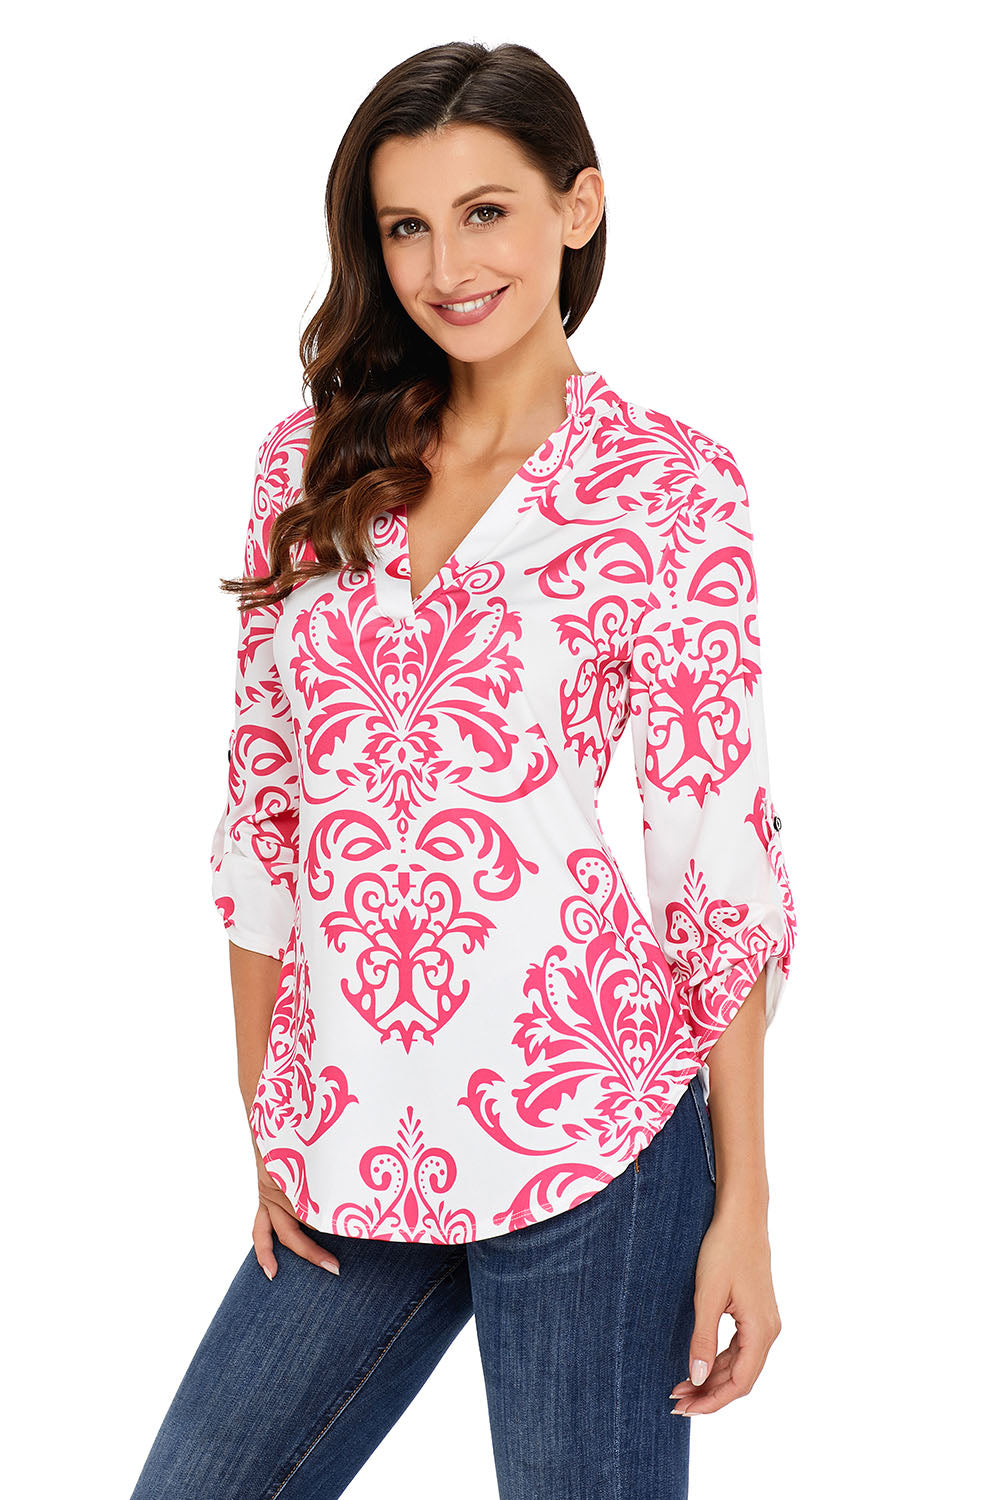 Her Fashion Pink Damask Print Slight Collar Stylish V Neck Blouse